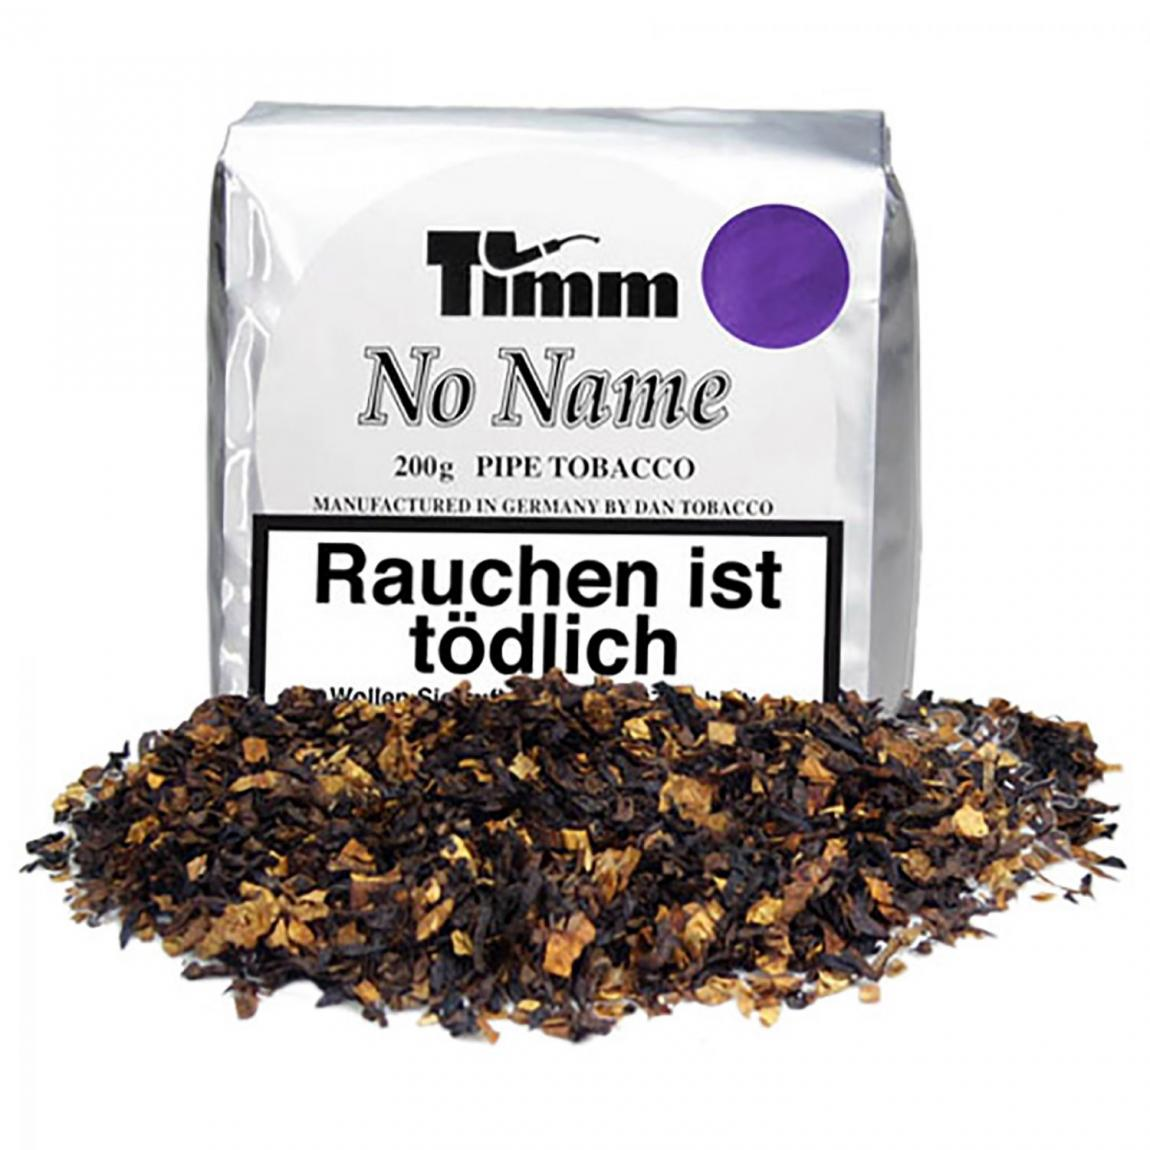 Timm's No Name violett 200g Sparpack